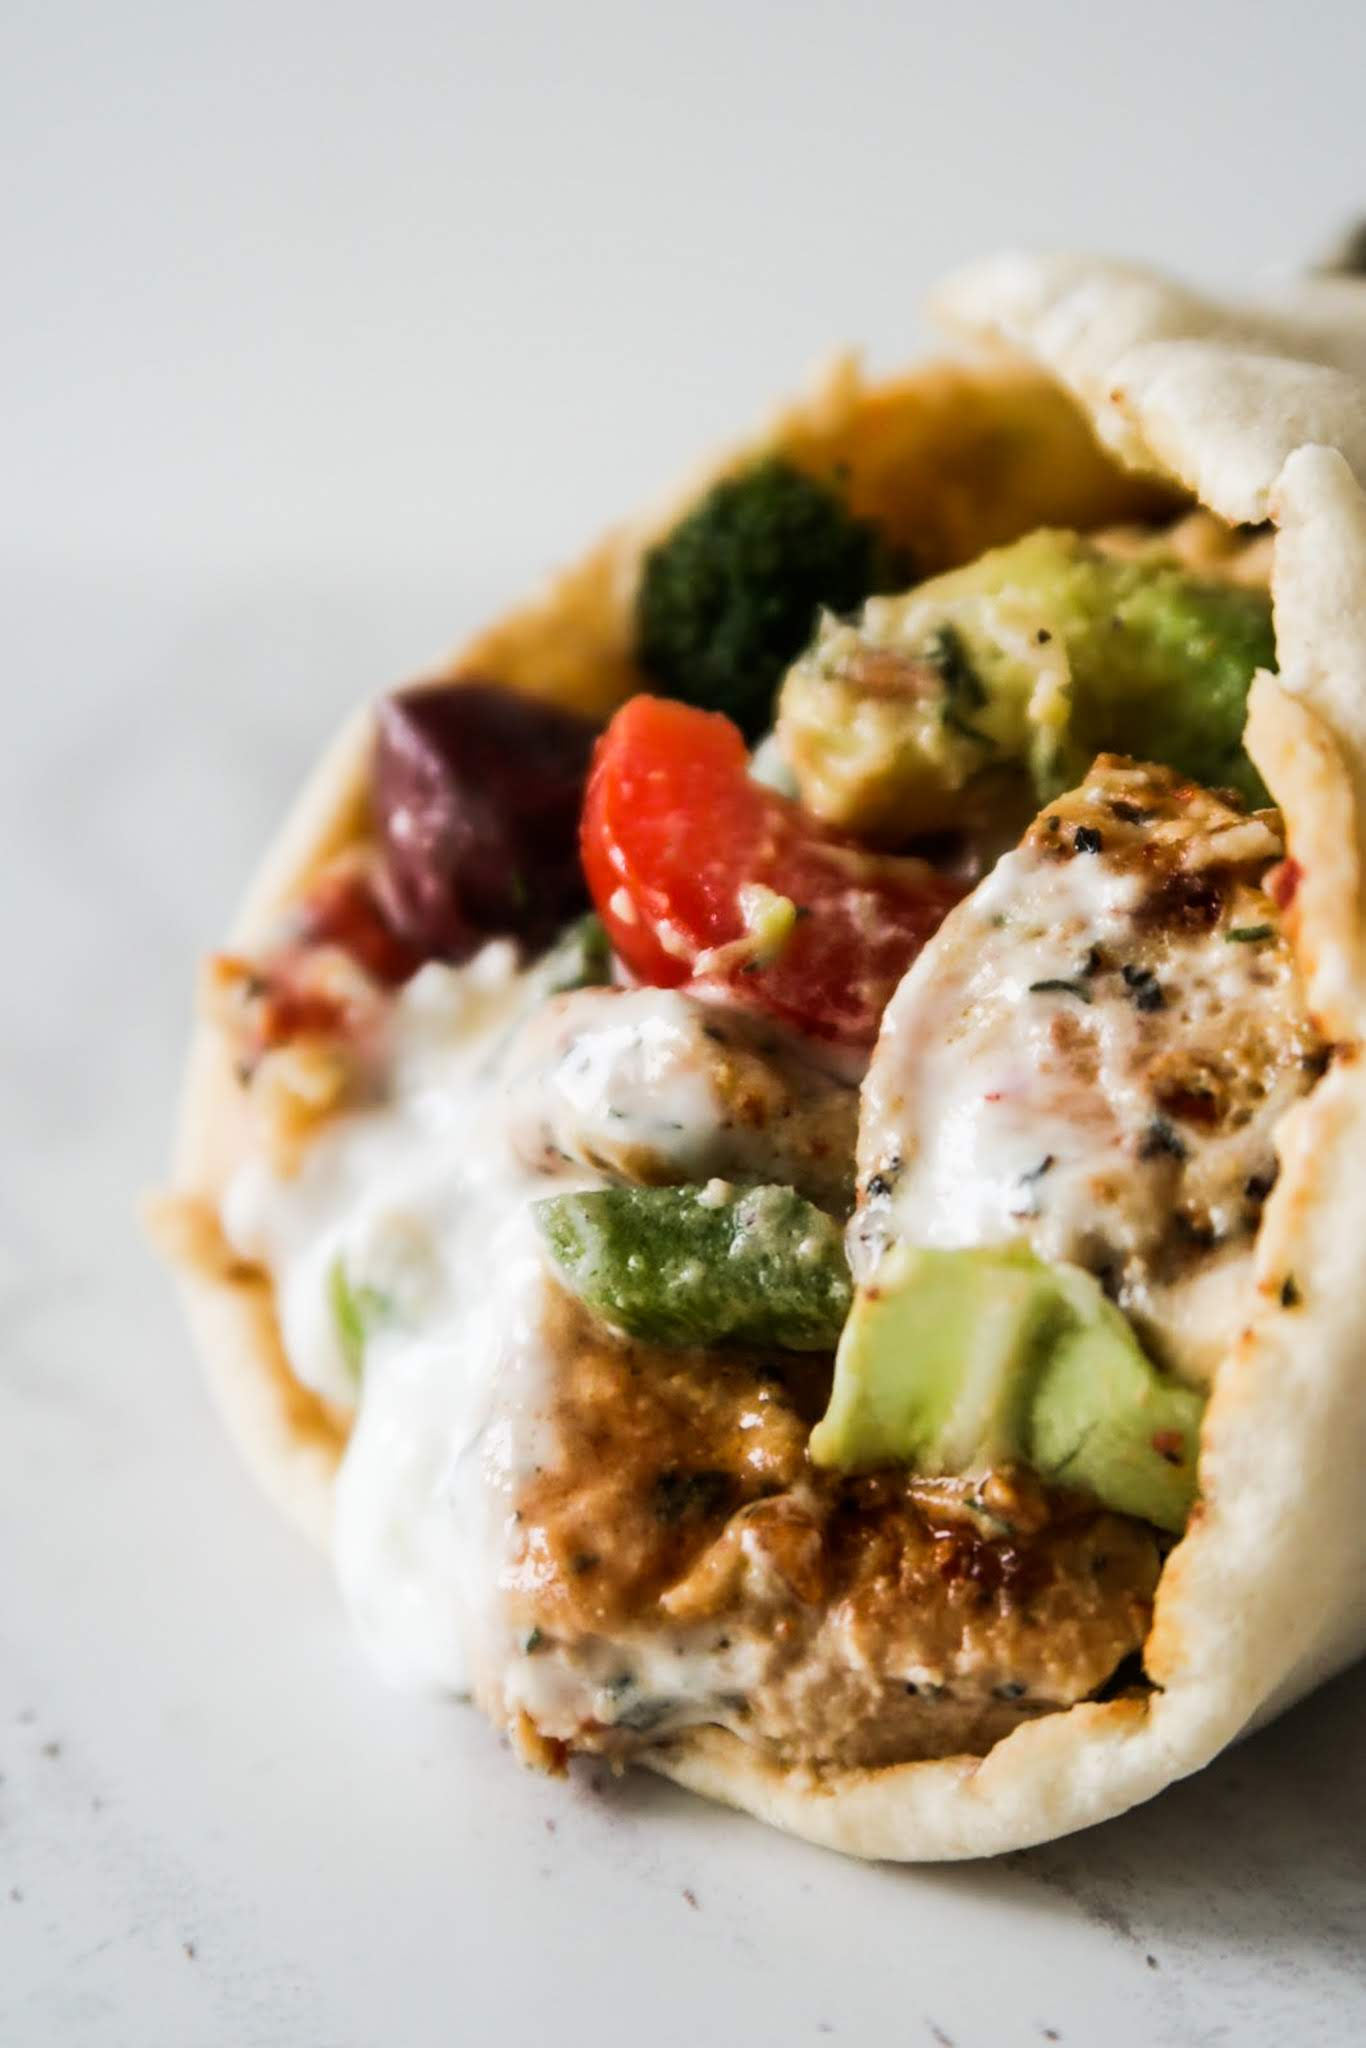 Amazing Mediterranean Chicken Wraps With garlicky yogurt sauce and hummus! These healthy wraps are a delicious healthy dinner recipe that everyone at your dinner table will love! This Mediterranean recipe is quite easy, uses simple ingredients and ready in about 30 minutes when you multi-task!